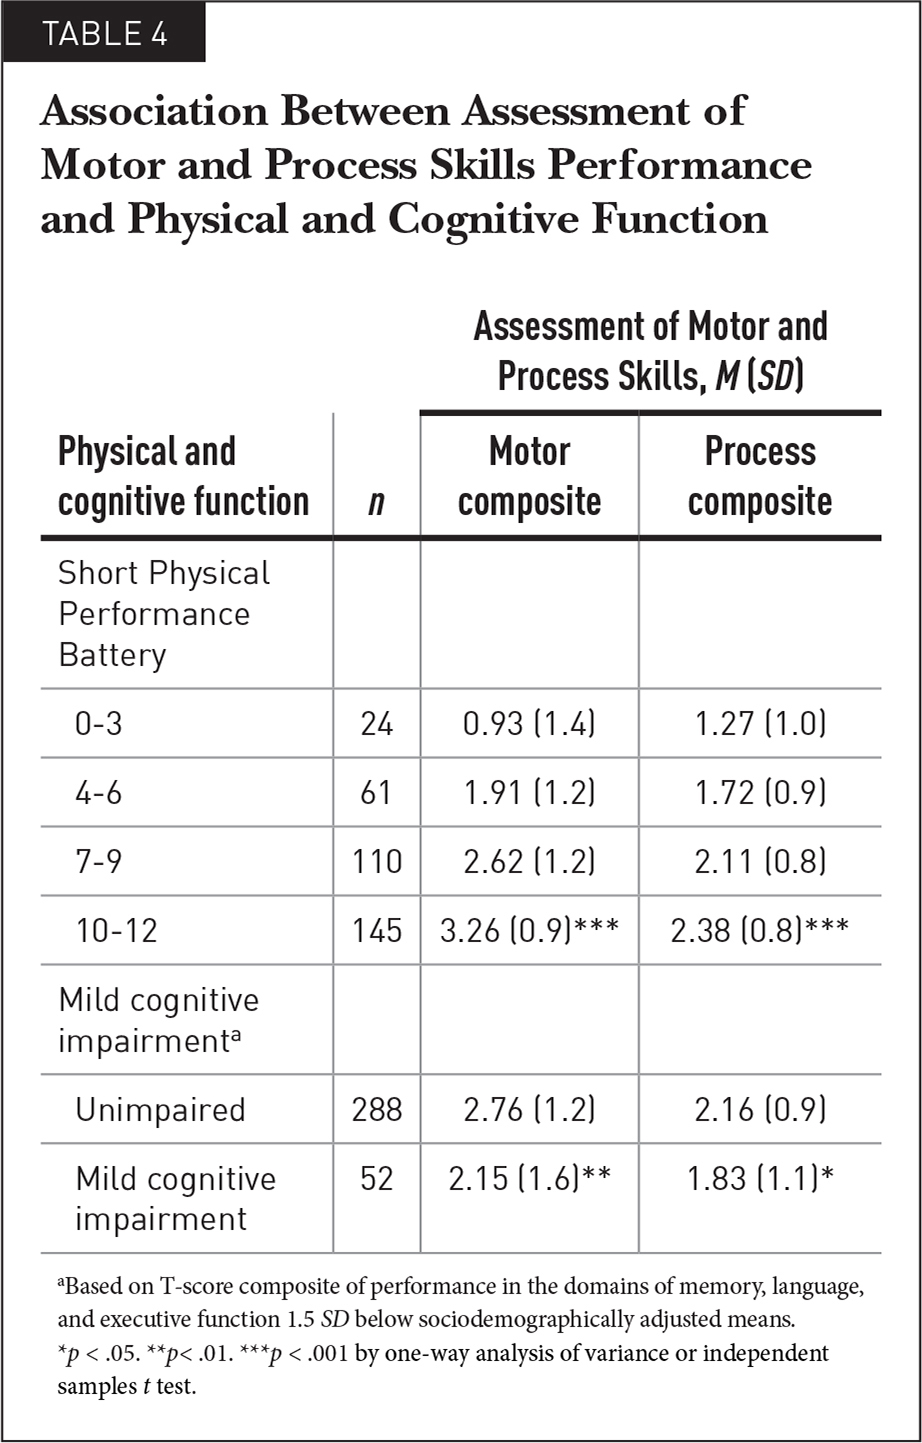 Association Between Assessment of Motor and Process Skills Performance and Physical and Cognitive Function